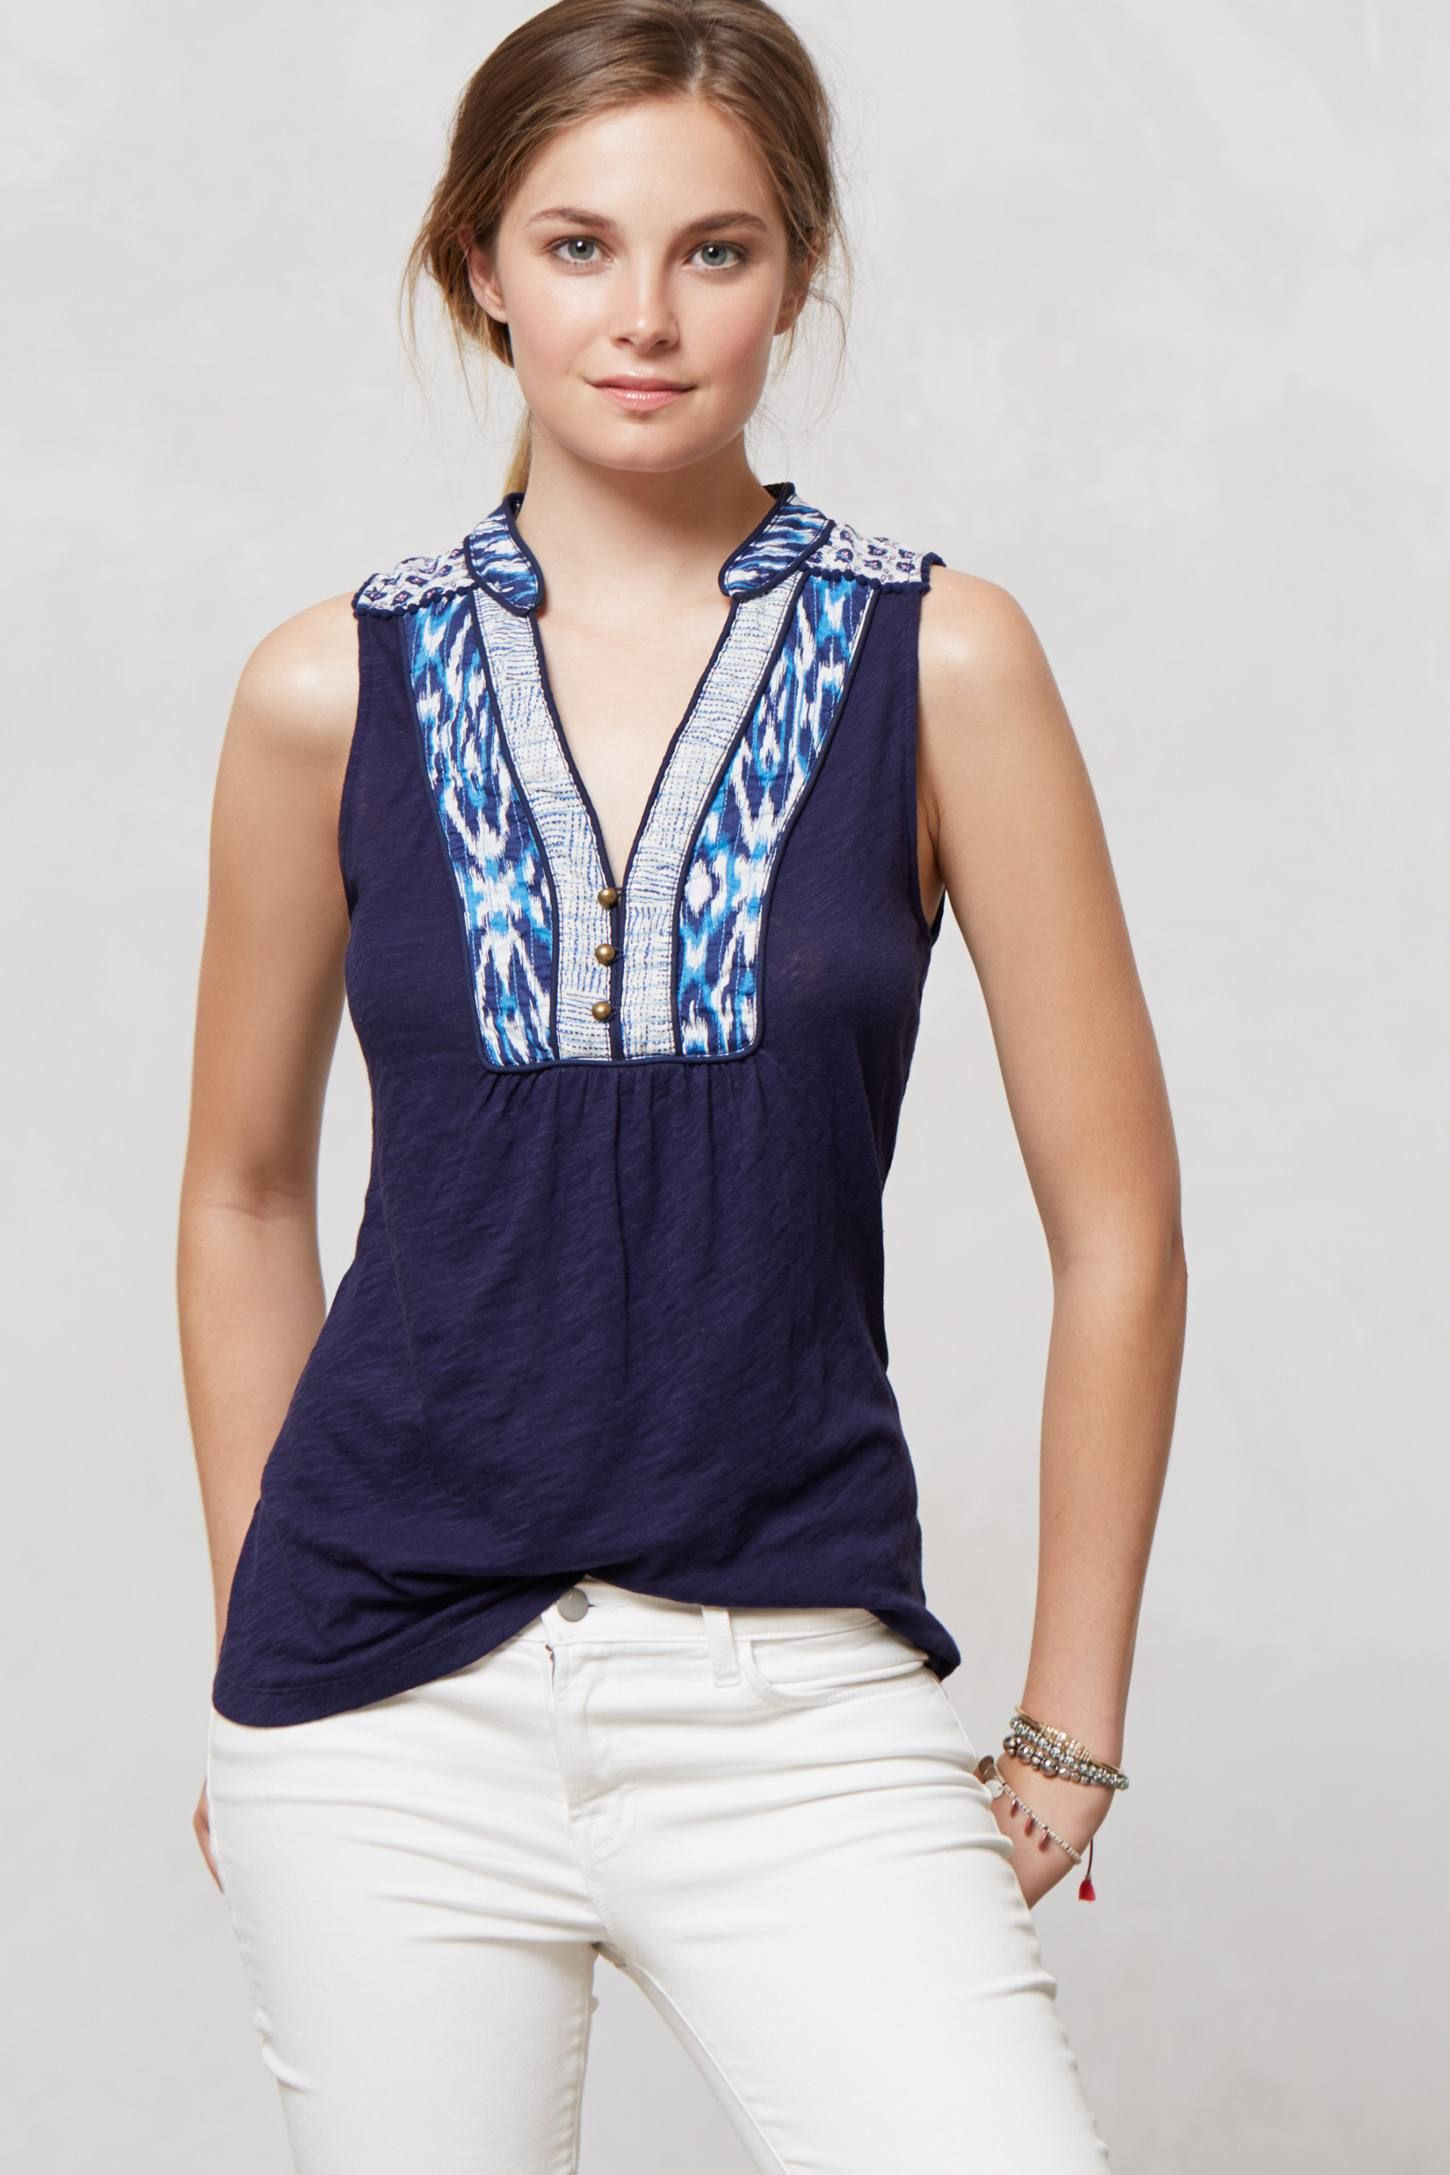 Embroidered Evie Top - anthropologie.com